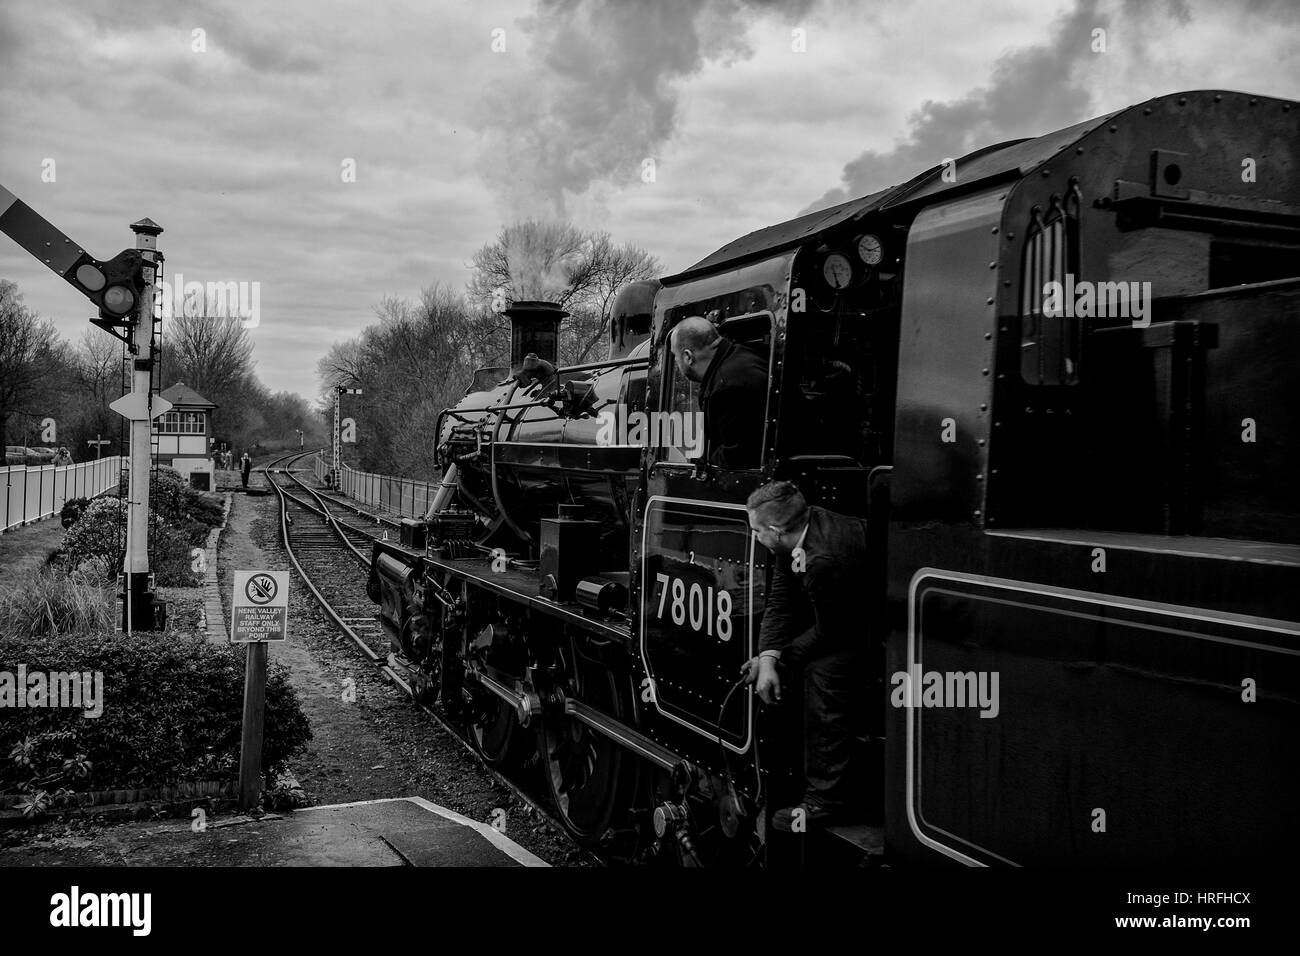 The Fenman 78018 Stock Photo